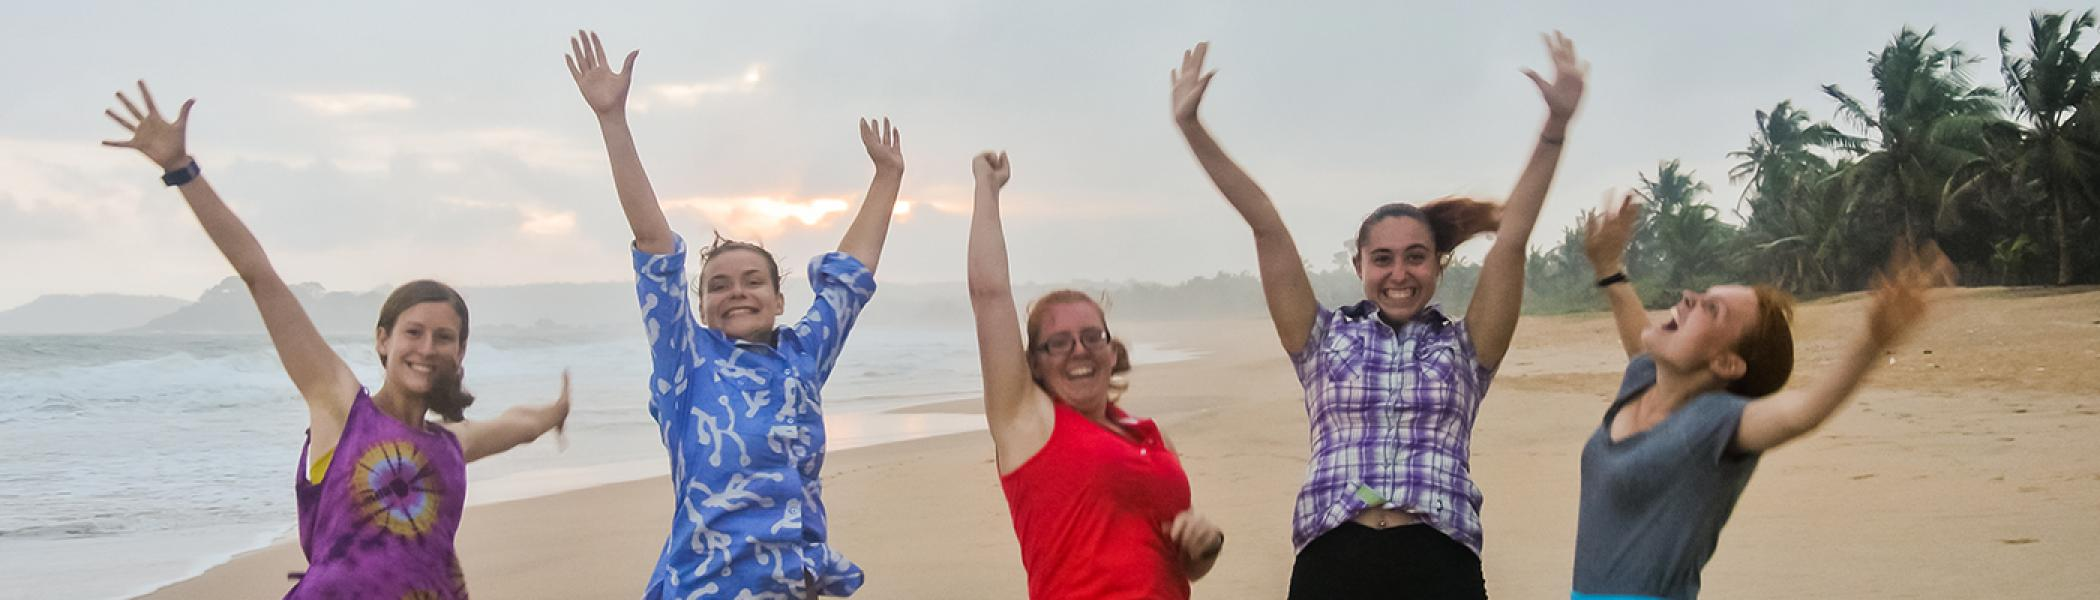 Five students on a beach, jumping in the air with their arms up